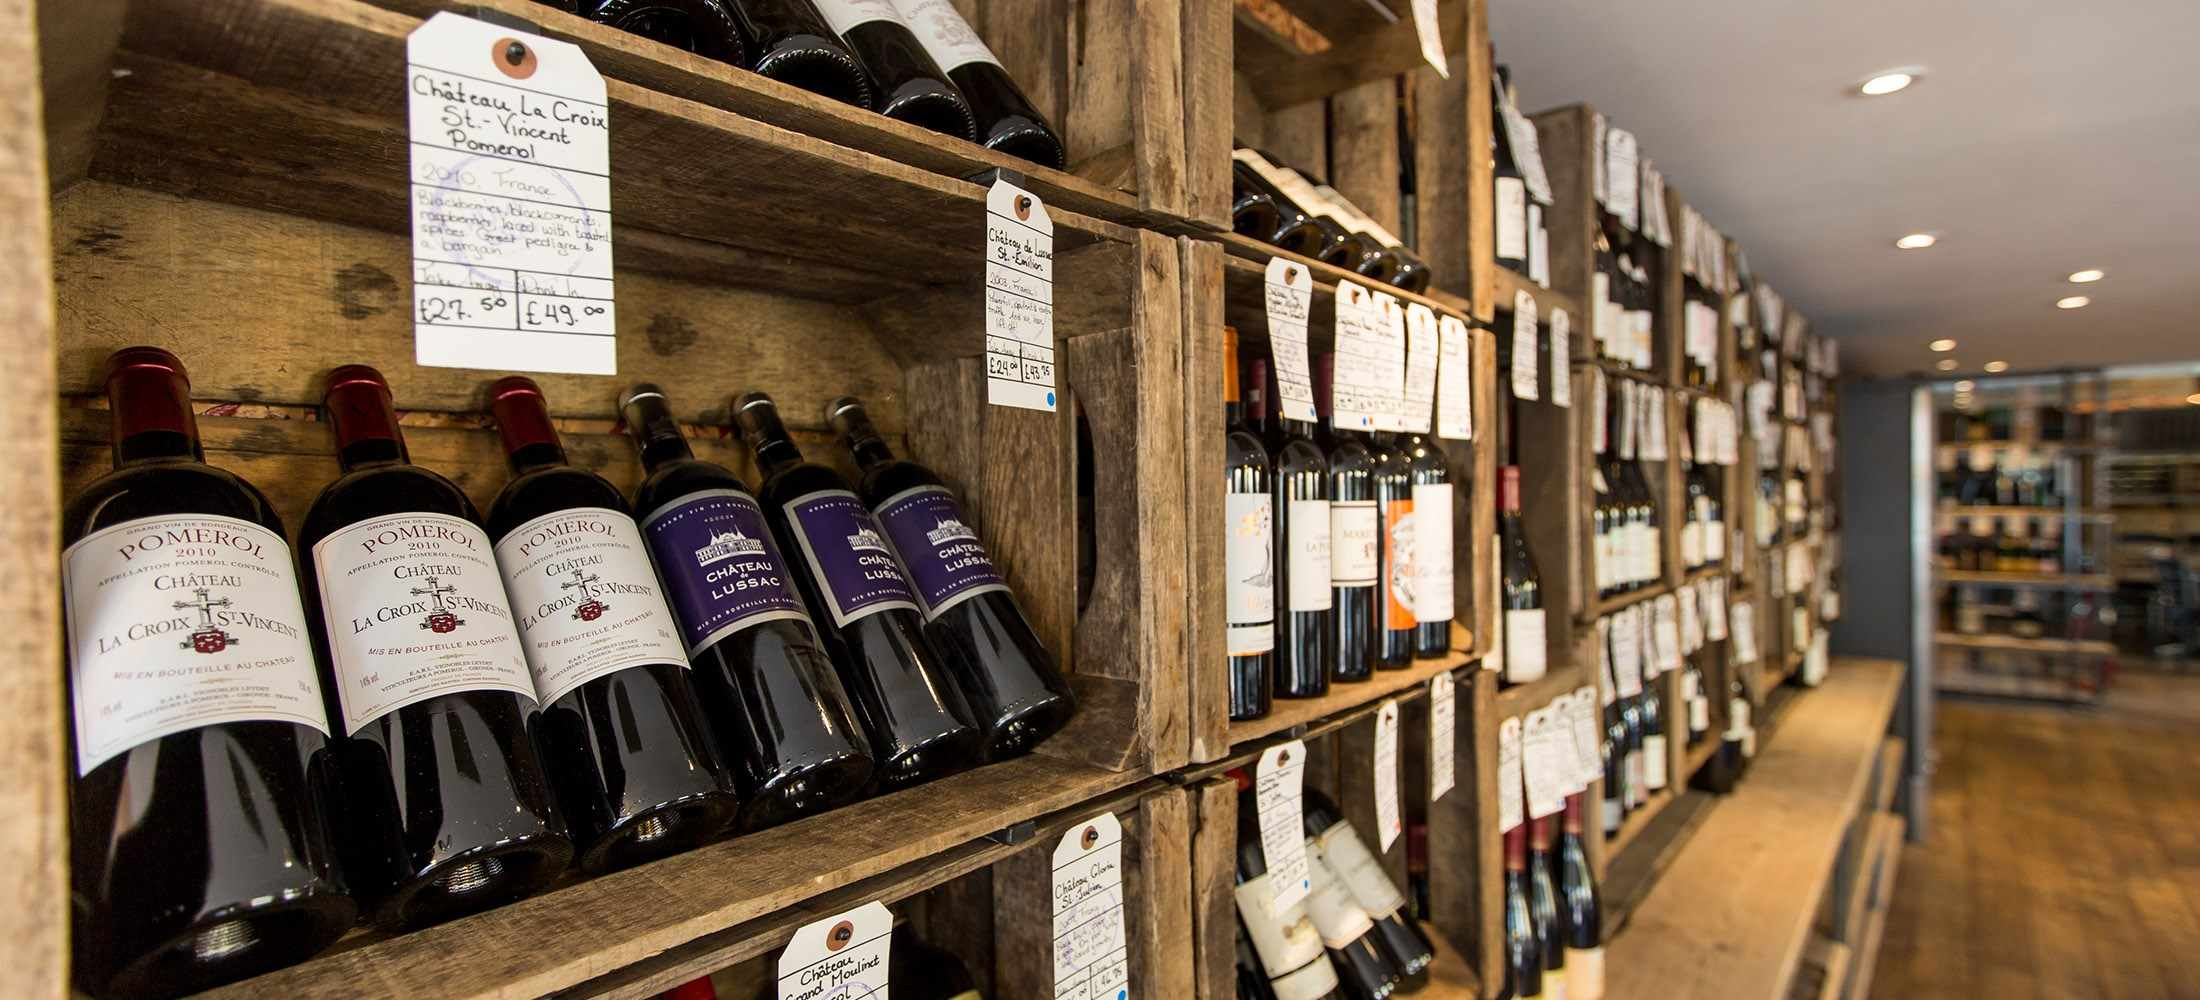 Wine bottles on wooden shelving